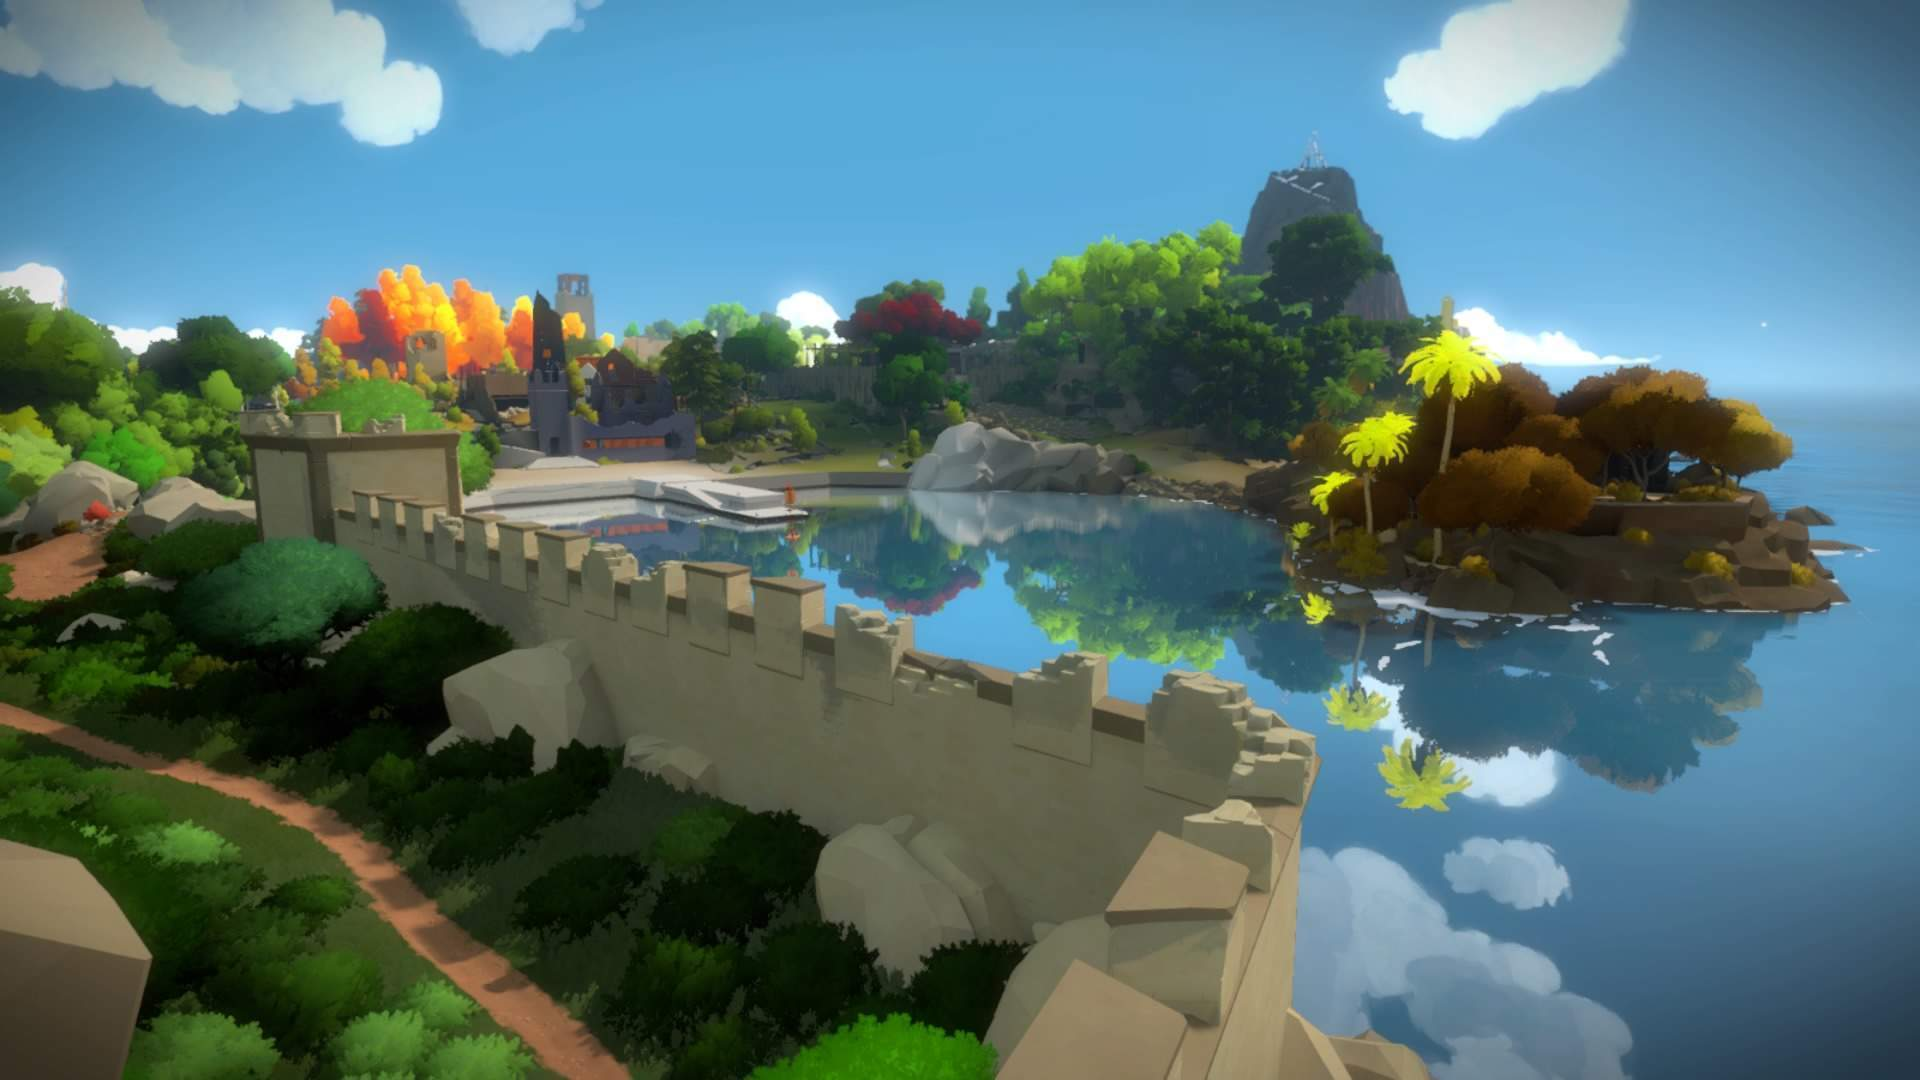 The Witness asks whether a videogame should always have explicit meaning